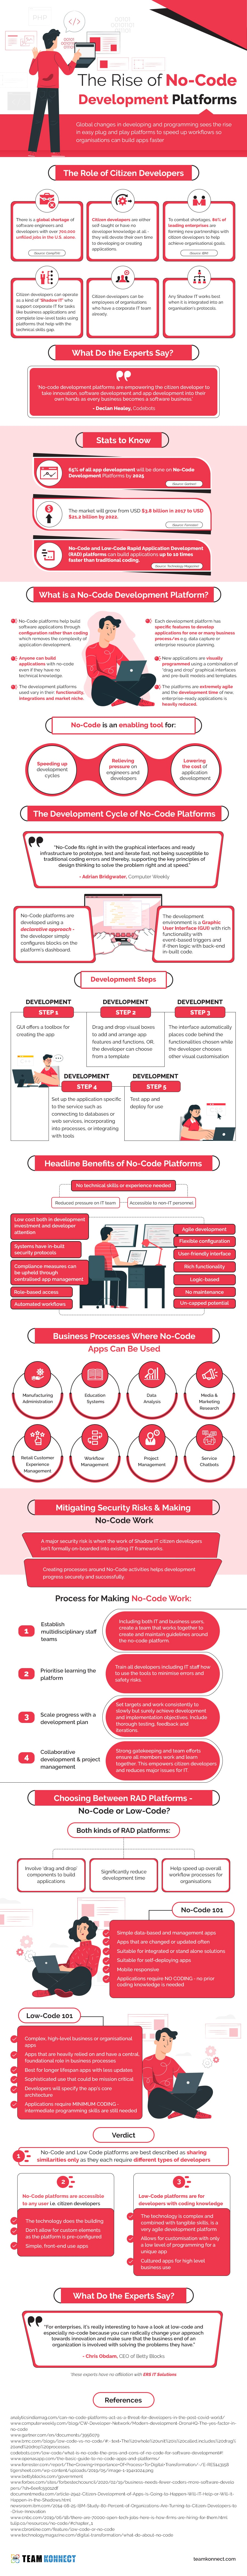 The-Rise-of-No-Code-Development-Platforms-Infographic